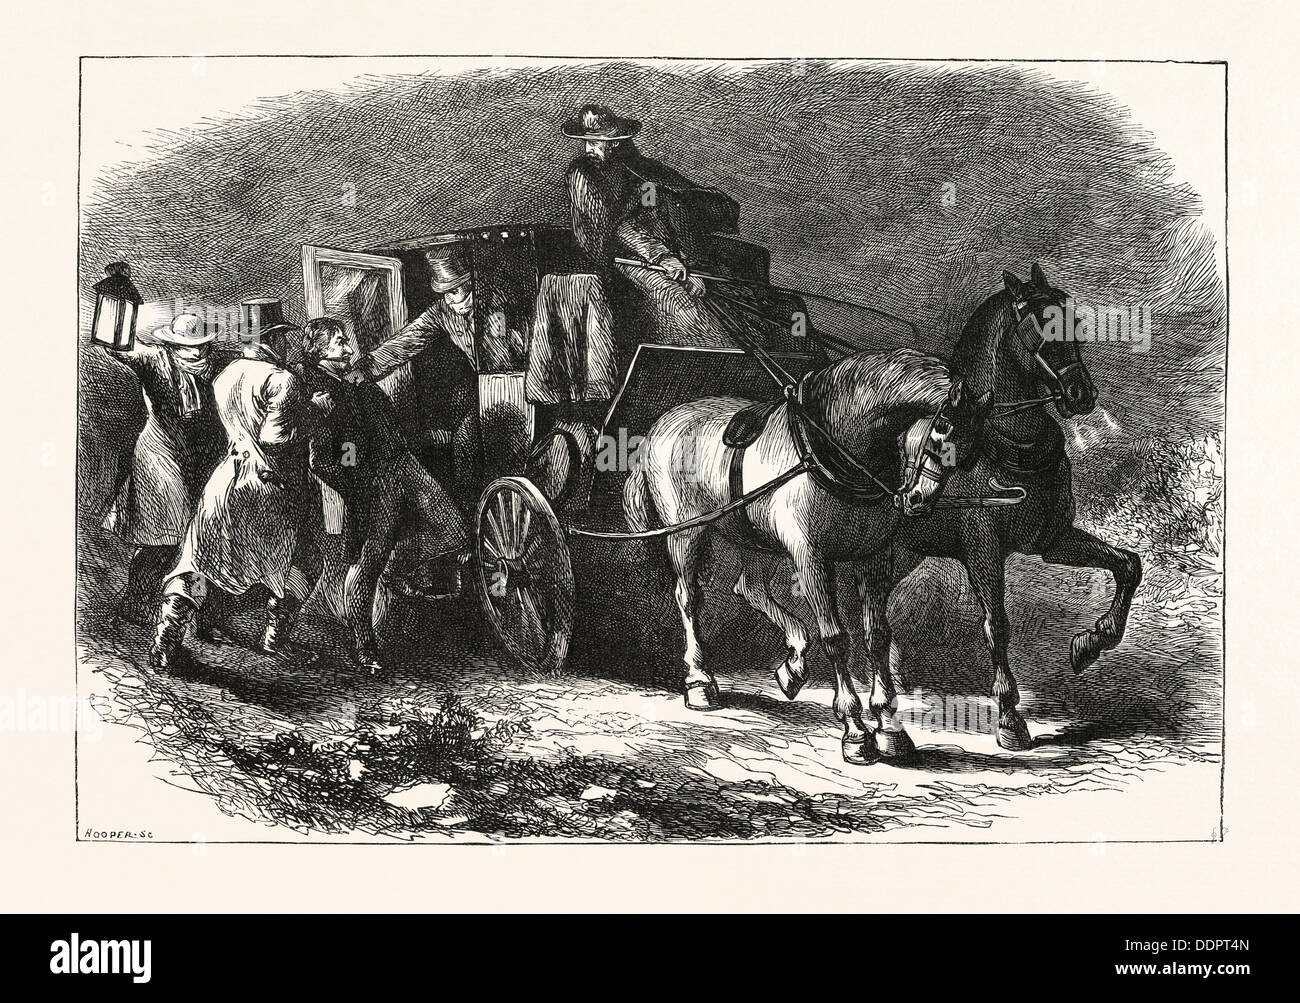 THE ABDUCTION OF WILLIAM MORGAN, He was a resident of Batavia, New York - Stock Image